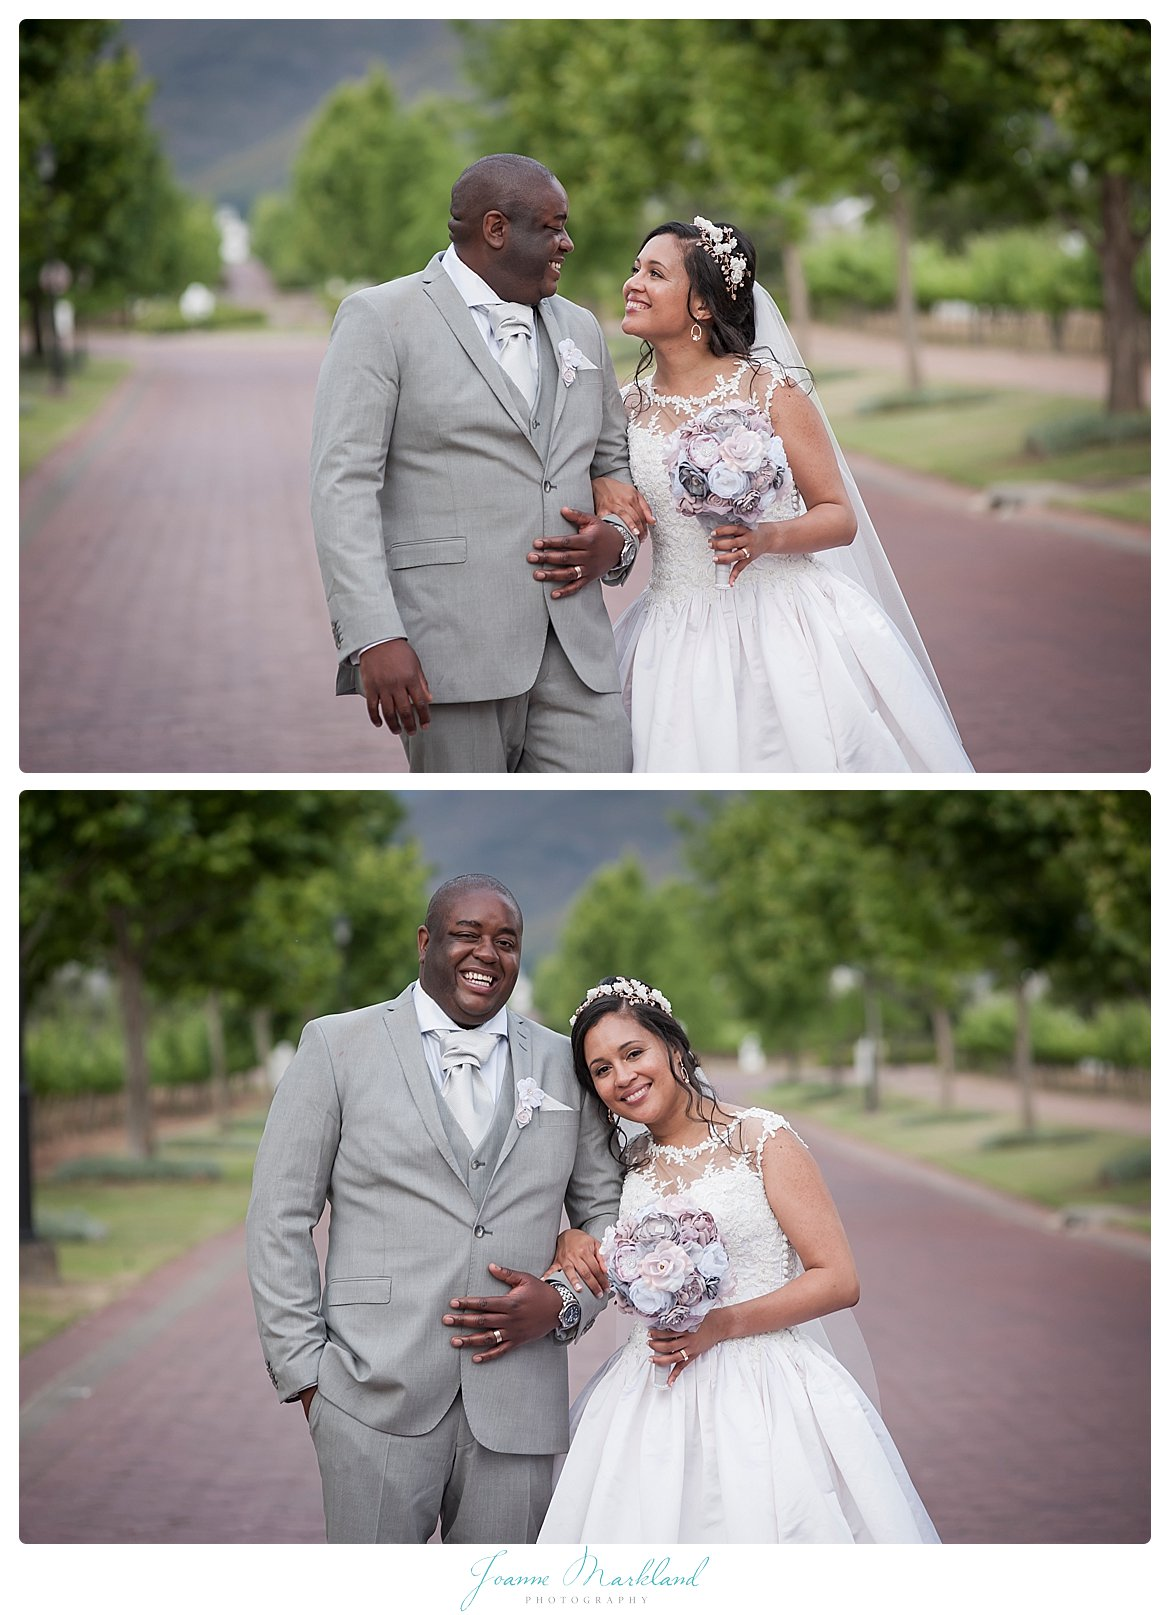 Val_de_vie_wedding_joanne_markland_photography_paarl-043